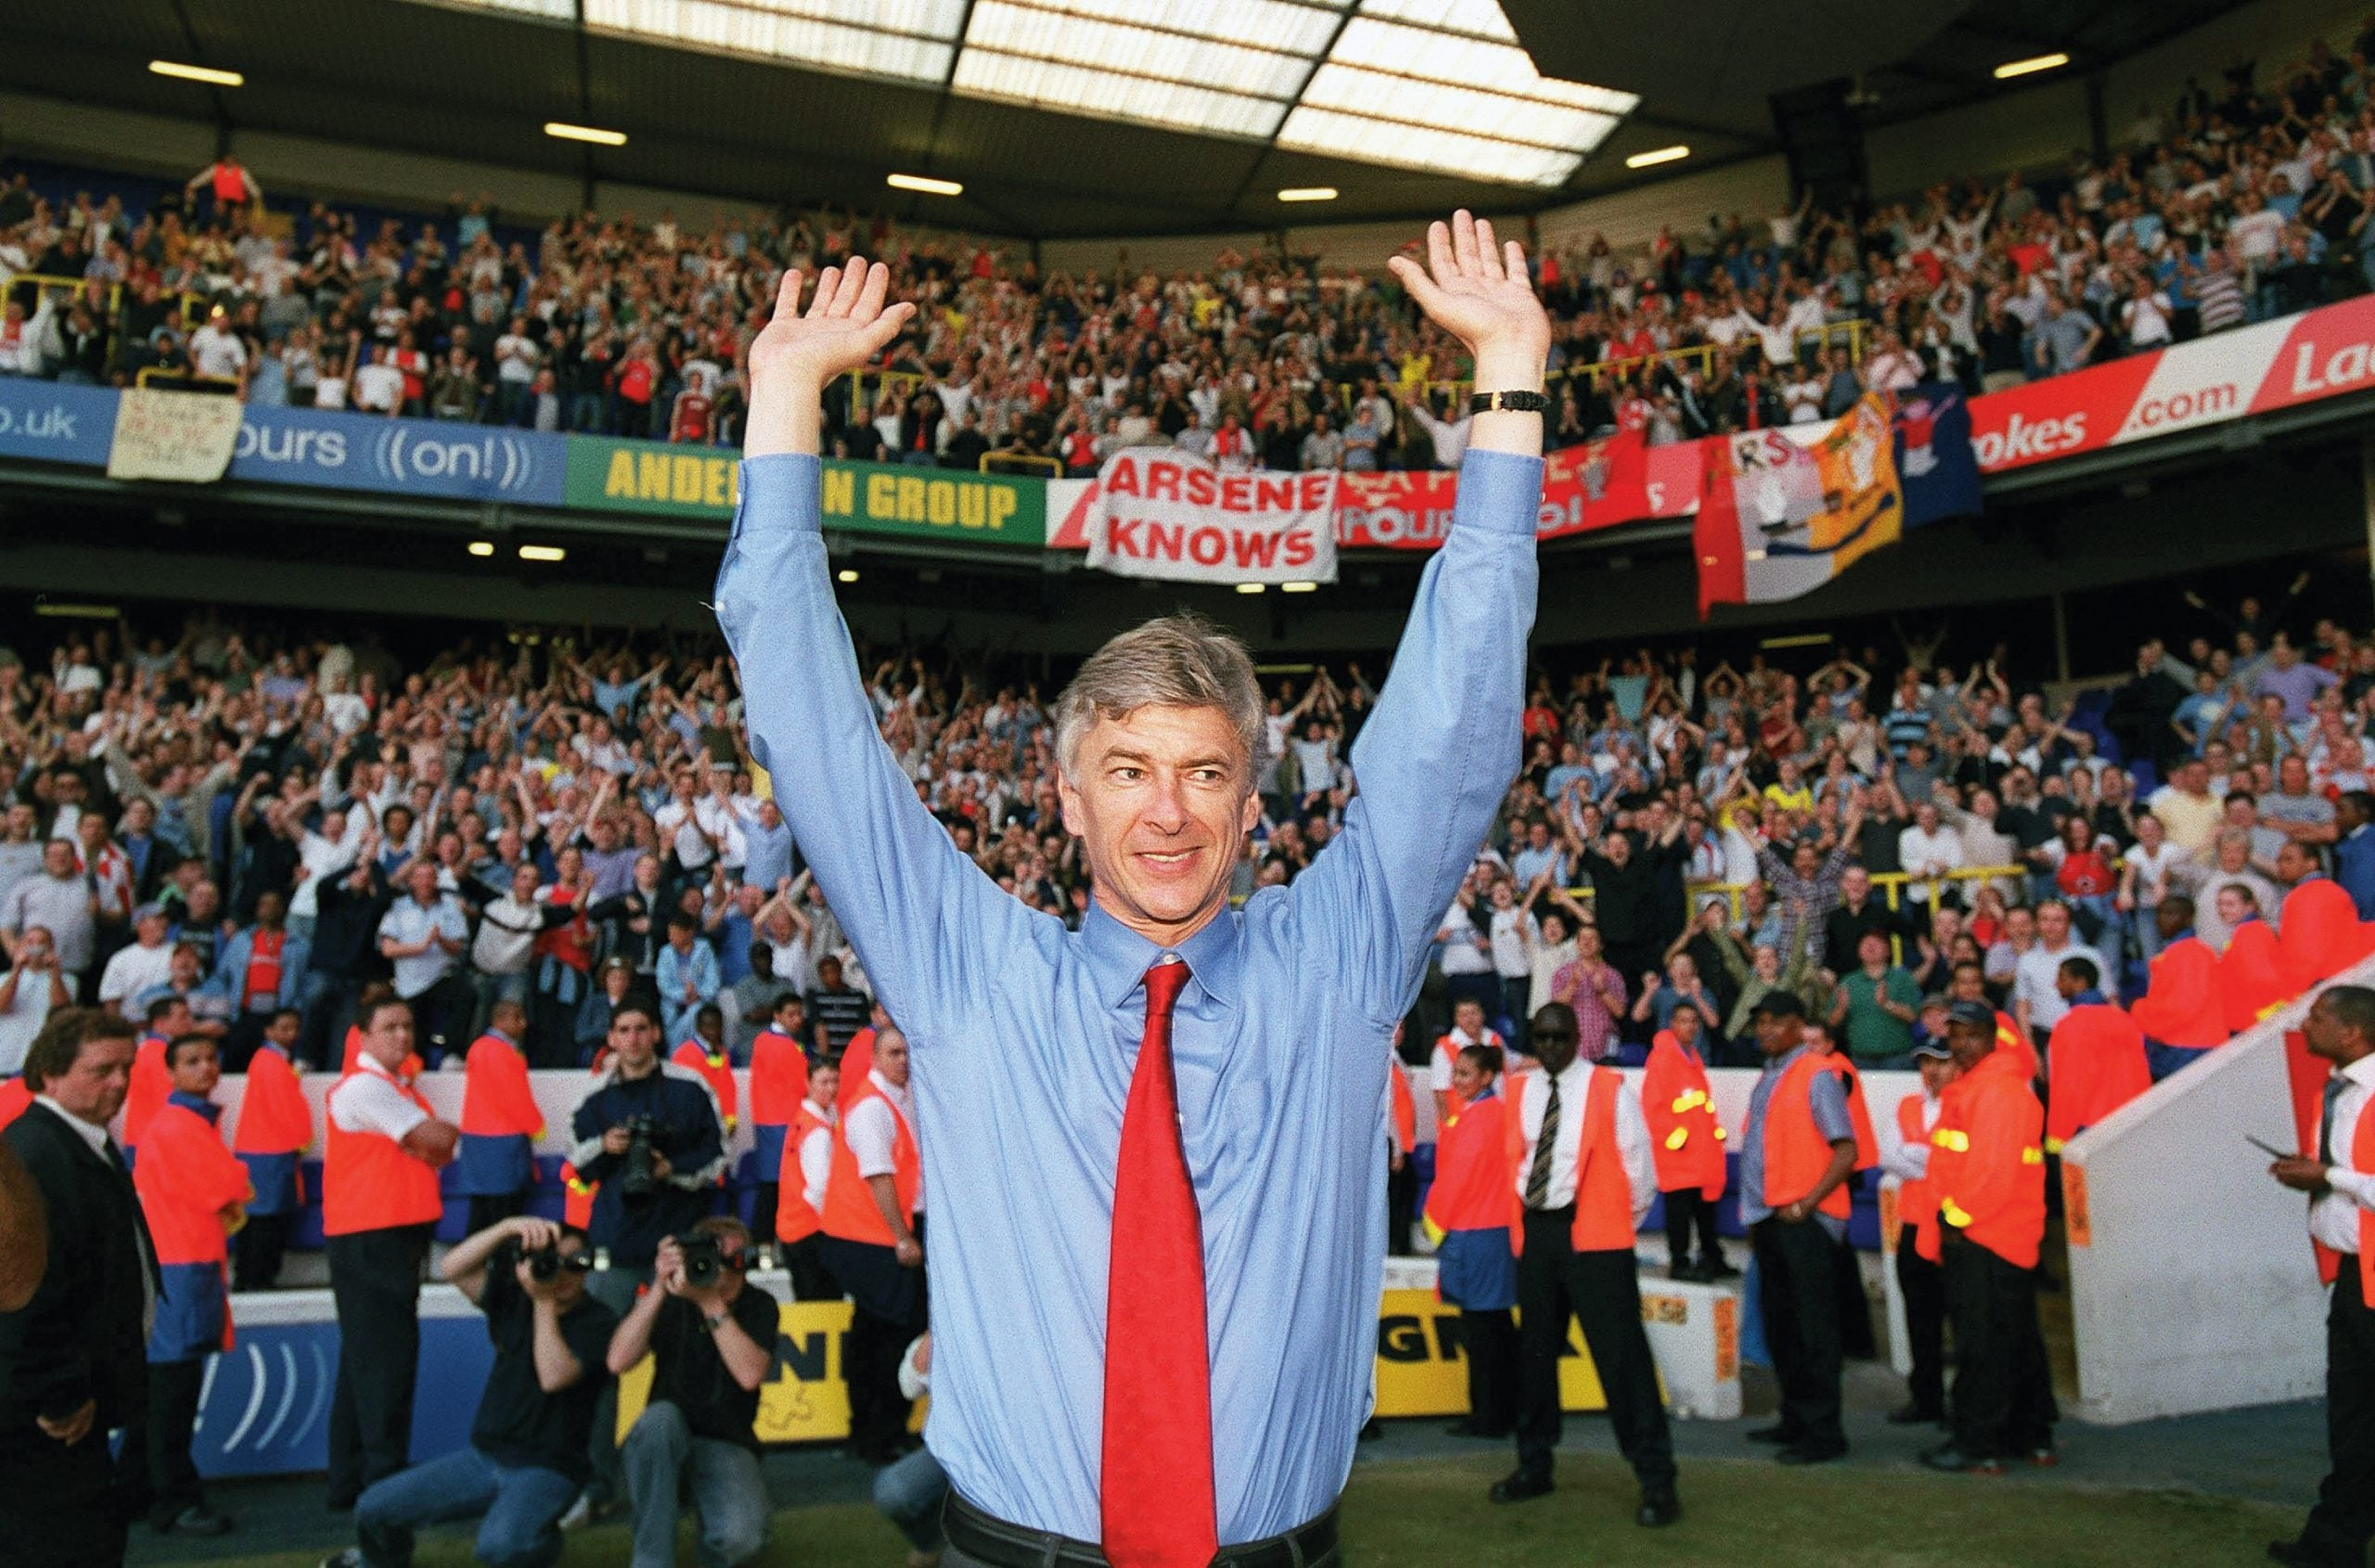 The rise and resolve of Arsène Wenger